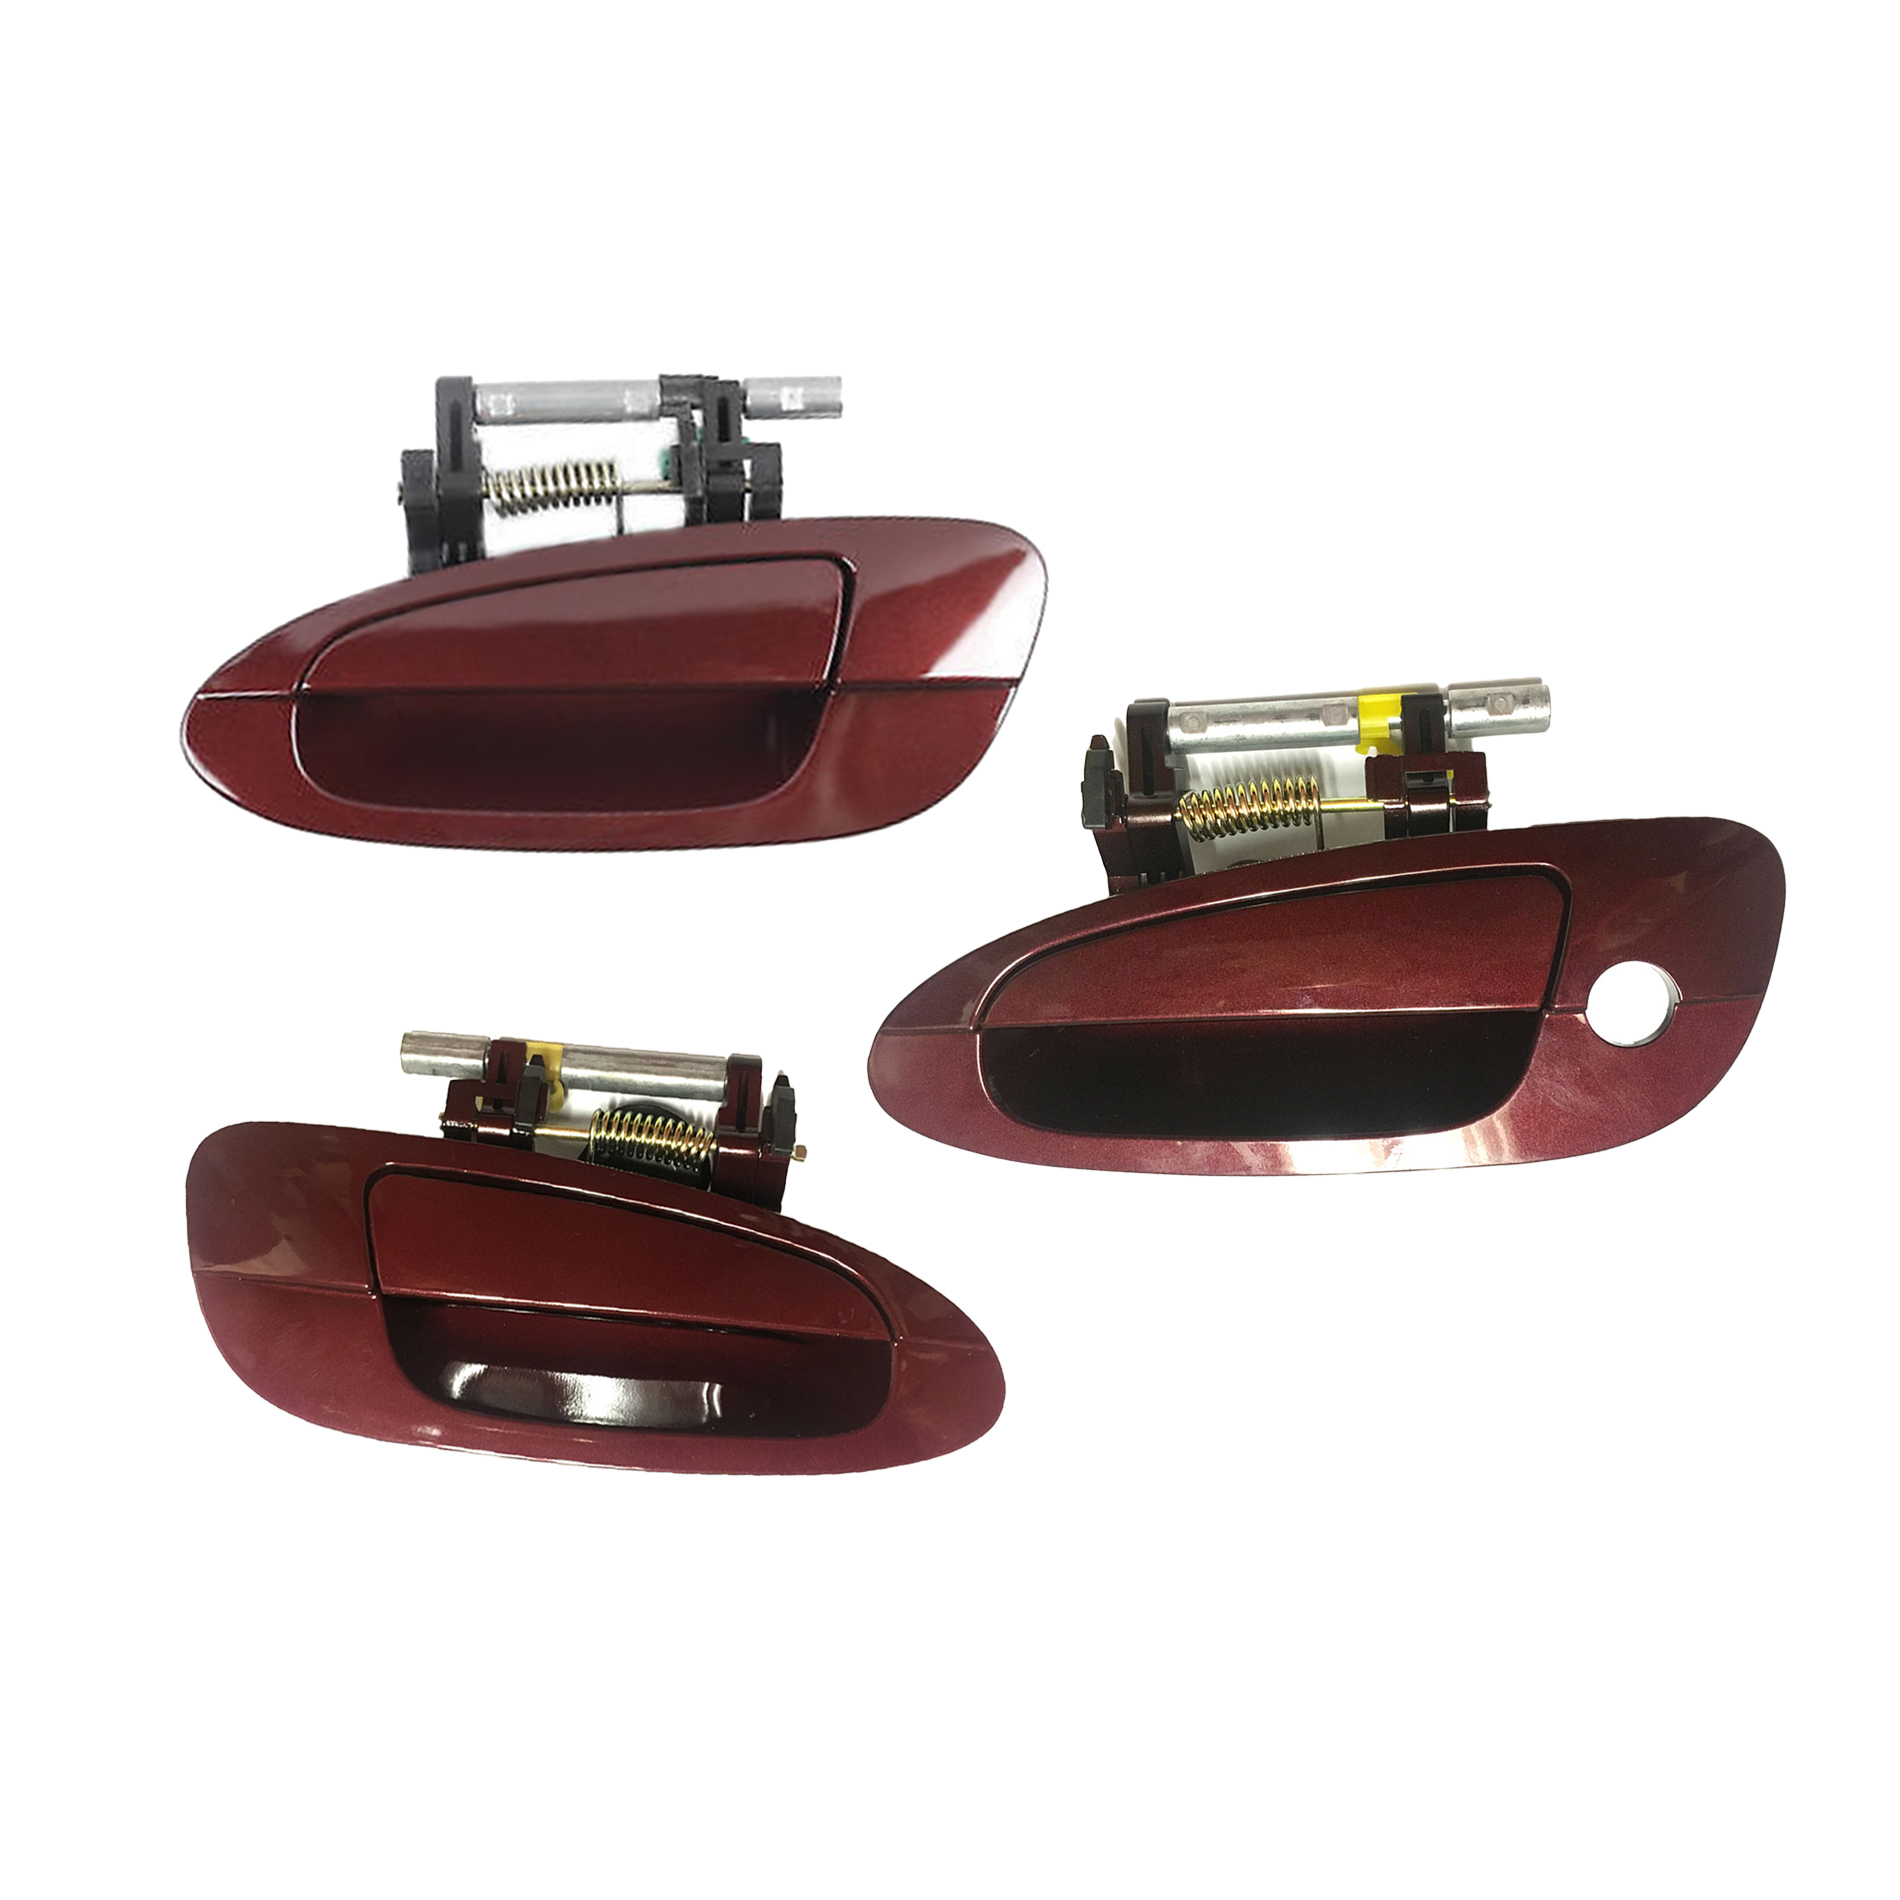 Brand NEW For 2002-2006 Nissan Altima Sparkle Red A15 Exterior Outside Door Handle Front and Rear Left 3PCS SET 02 03 04 05 06